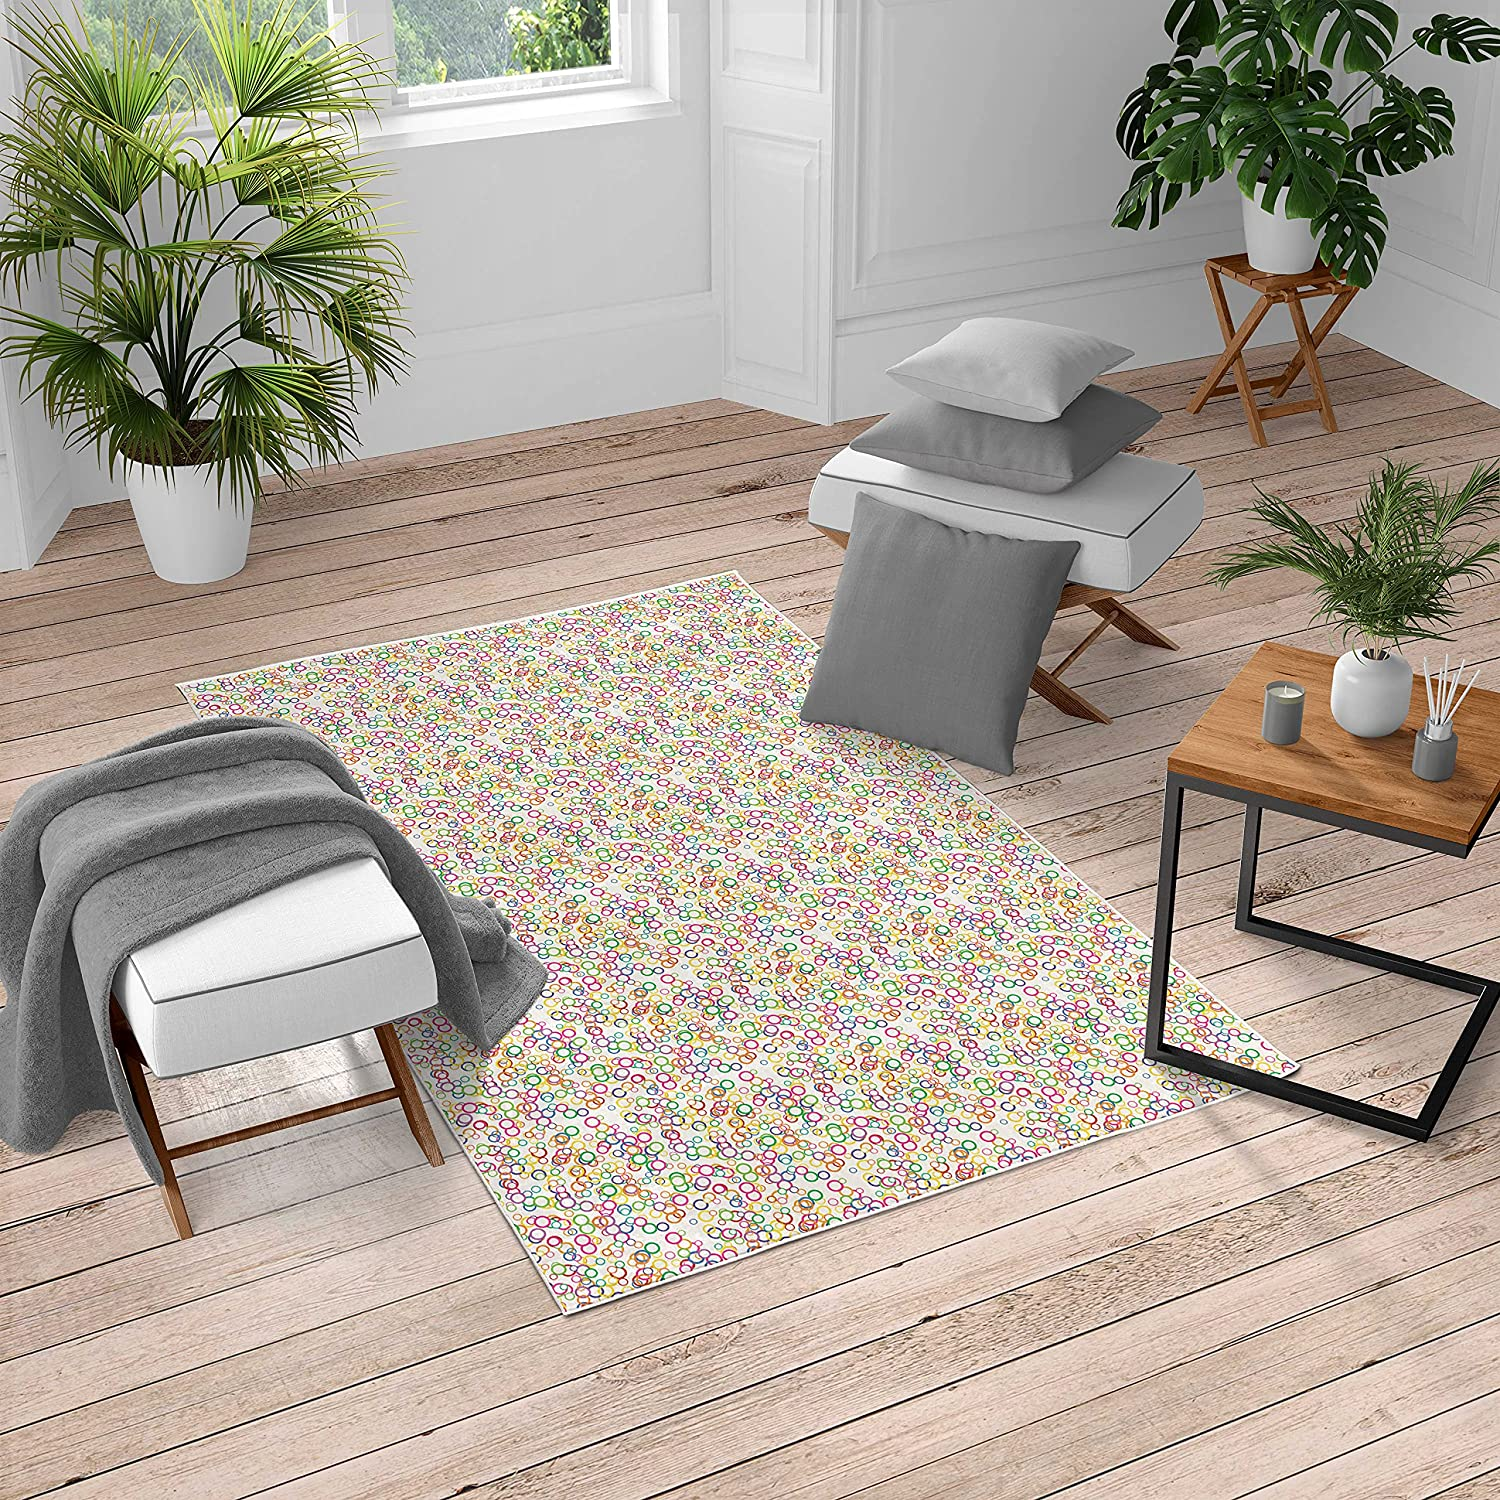 Long-awaited Ambesonne Rainbow Turkish Max 65% OFF Area Party Gather Circles Rug